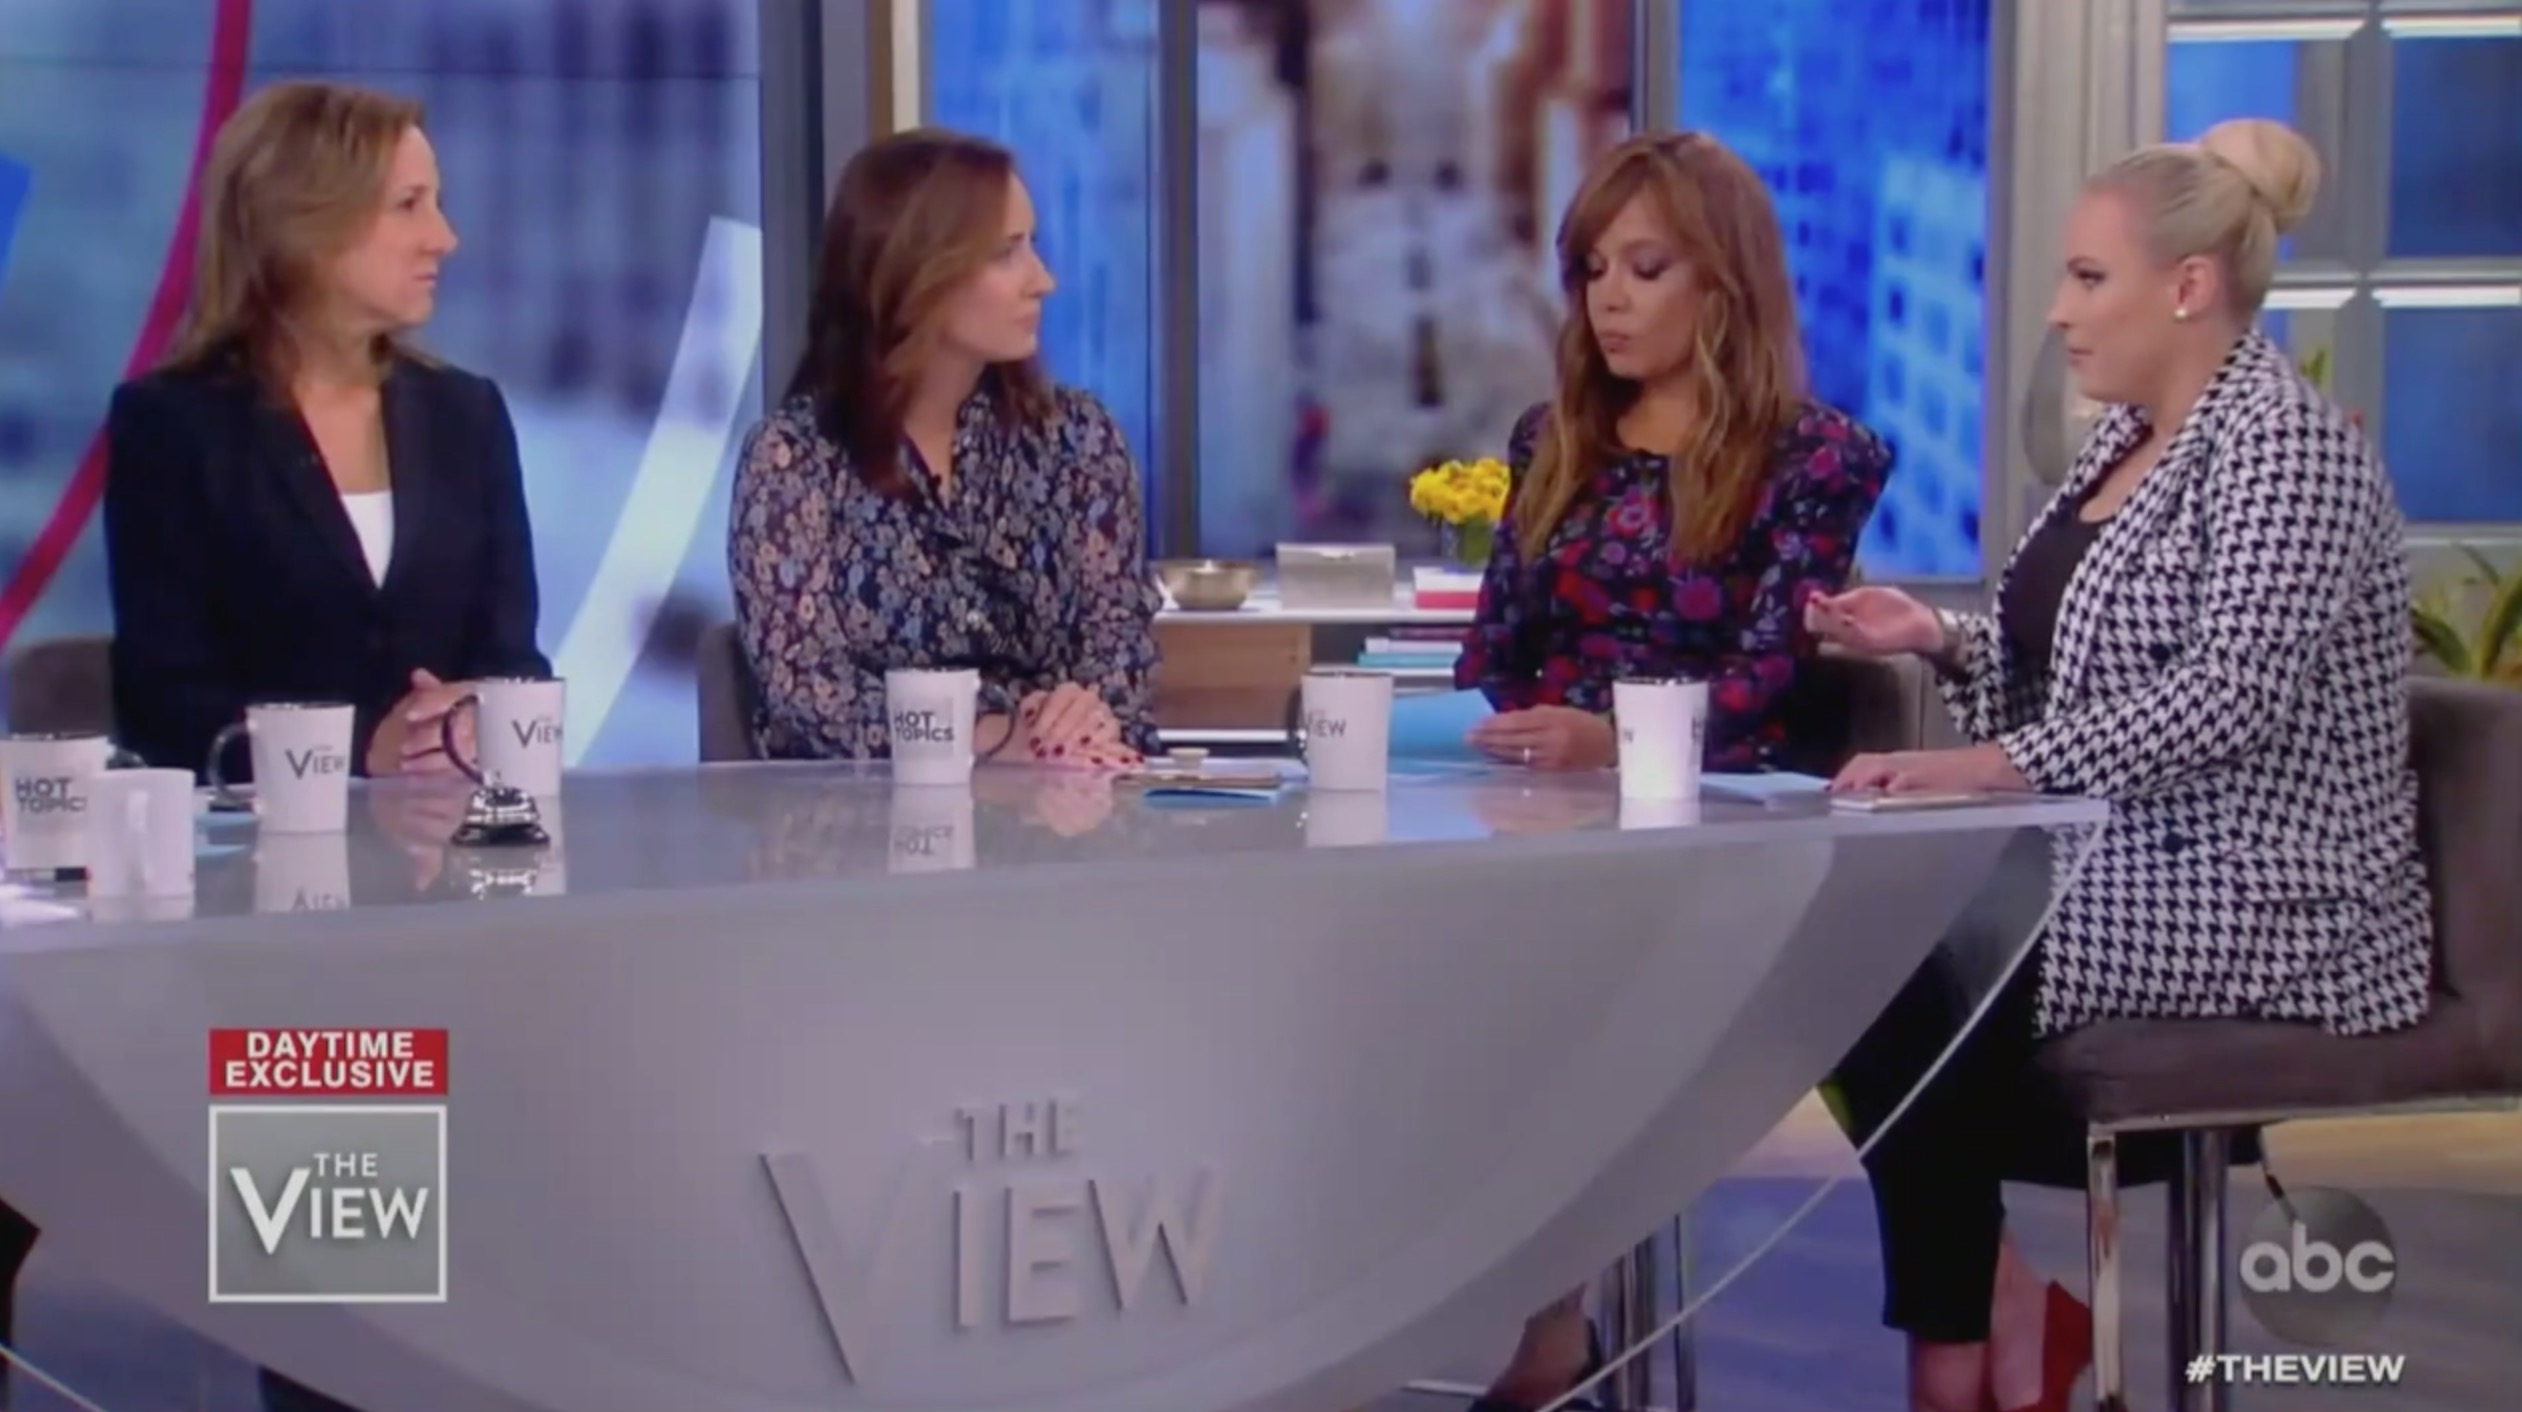 Meghan McCain Confronts Authors of New Kavanaugh Book in Tense Interview: 'People Think This is a Hatchet Job'